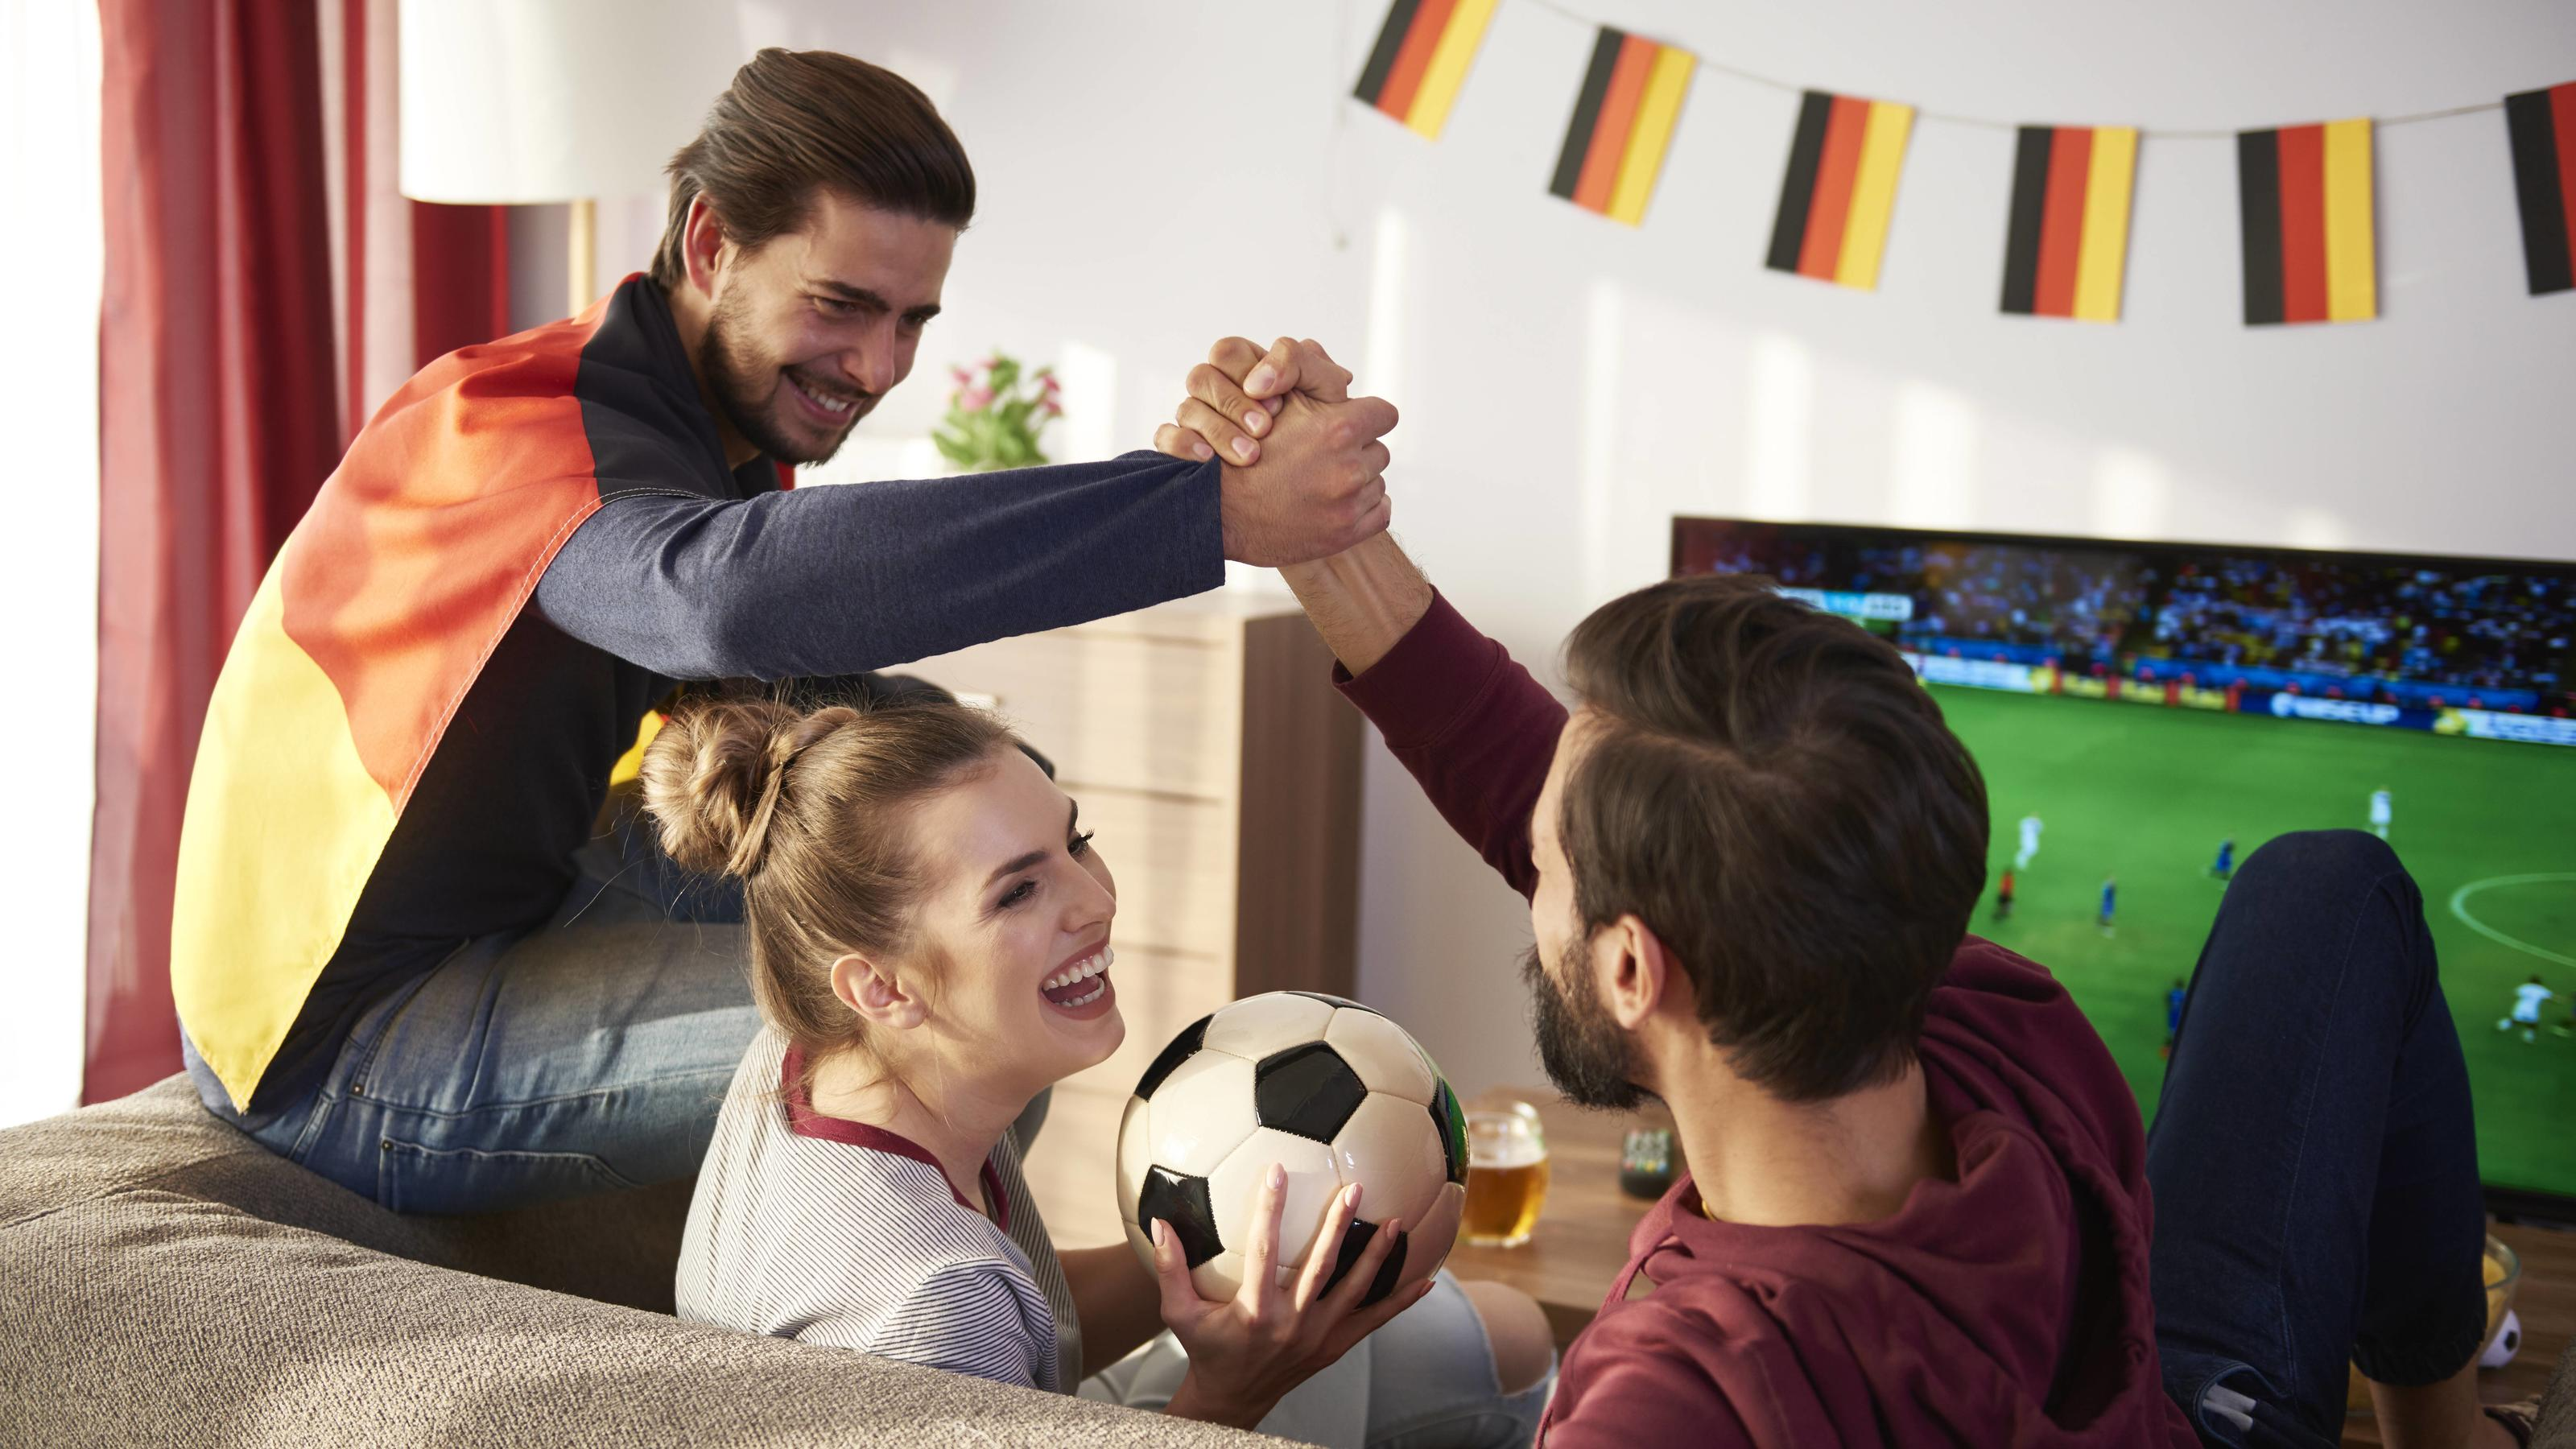 German football fans watching Tv and cheering model released Symbolfoto property released PUBLICATIONxINxGERxSUIxAUTxHUNxONLY ABIF00083